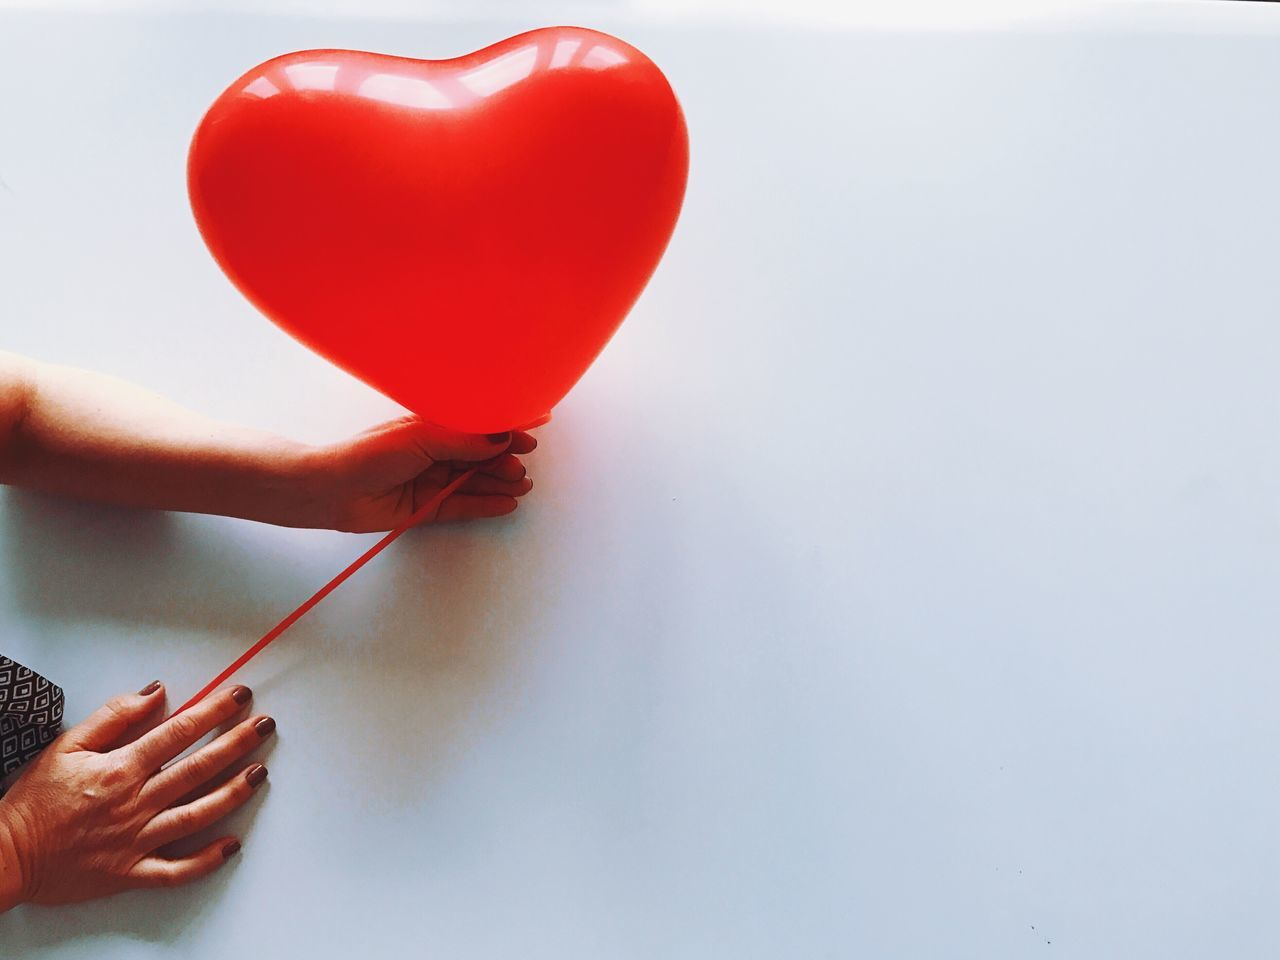 Heart Shape Red Love Human Hand One Person Human Body Part Holding Balloon Real People Close-up Indoors  Day